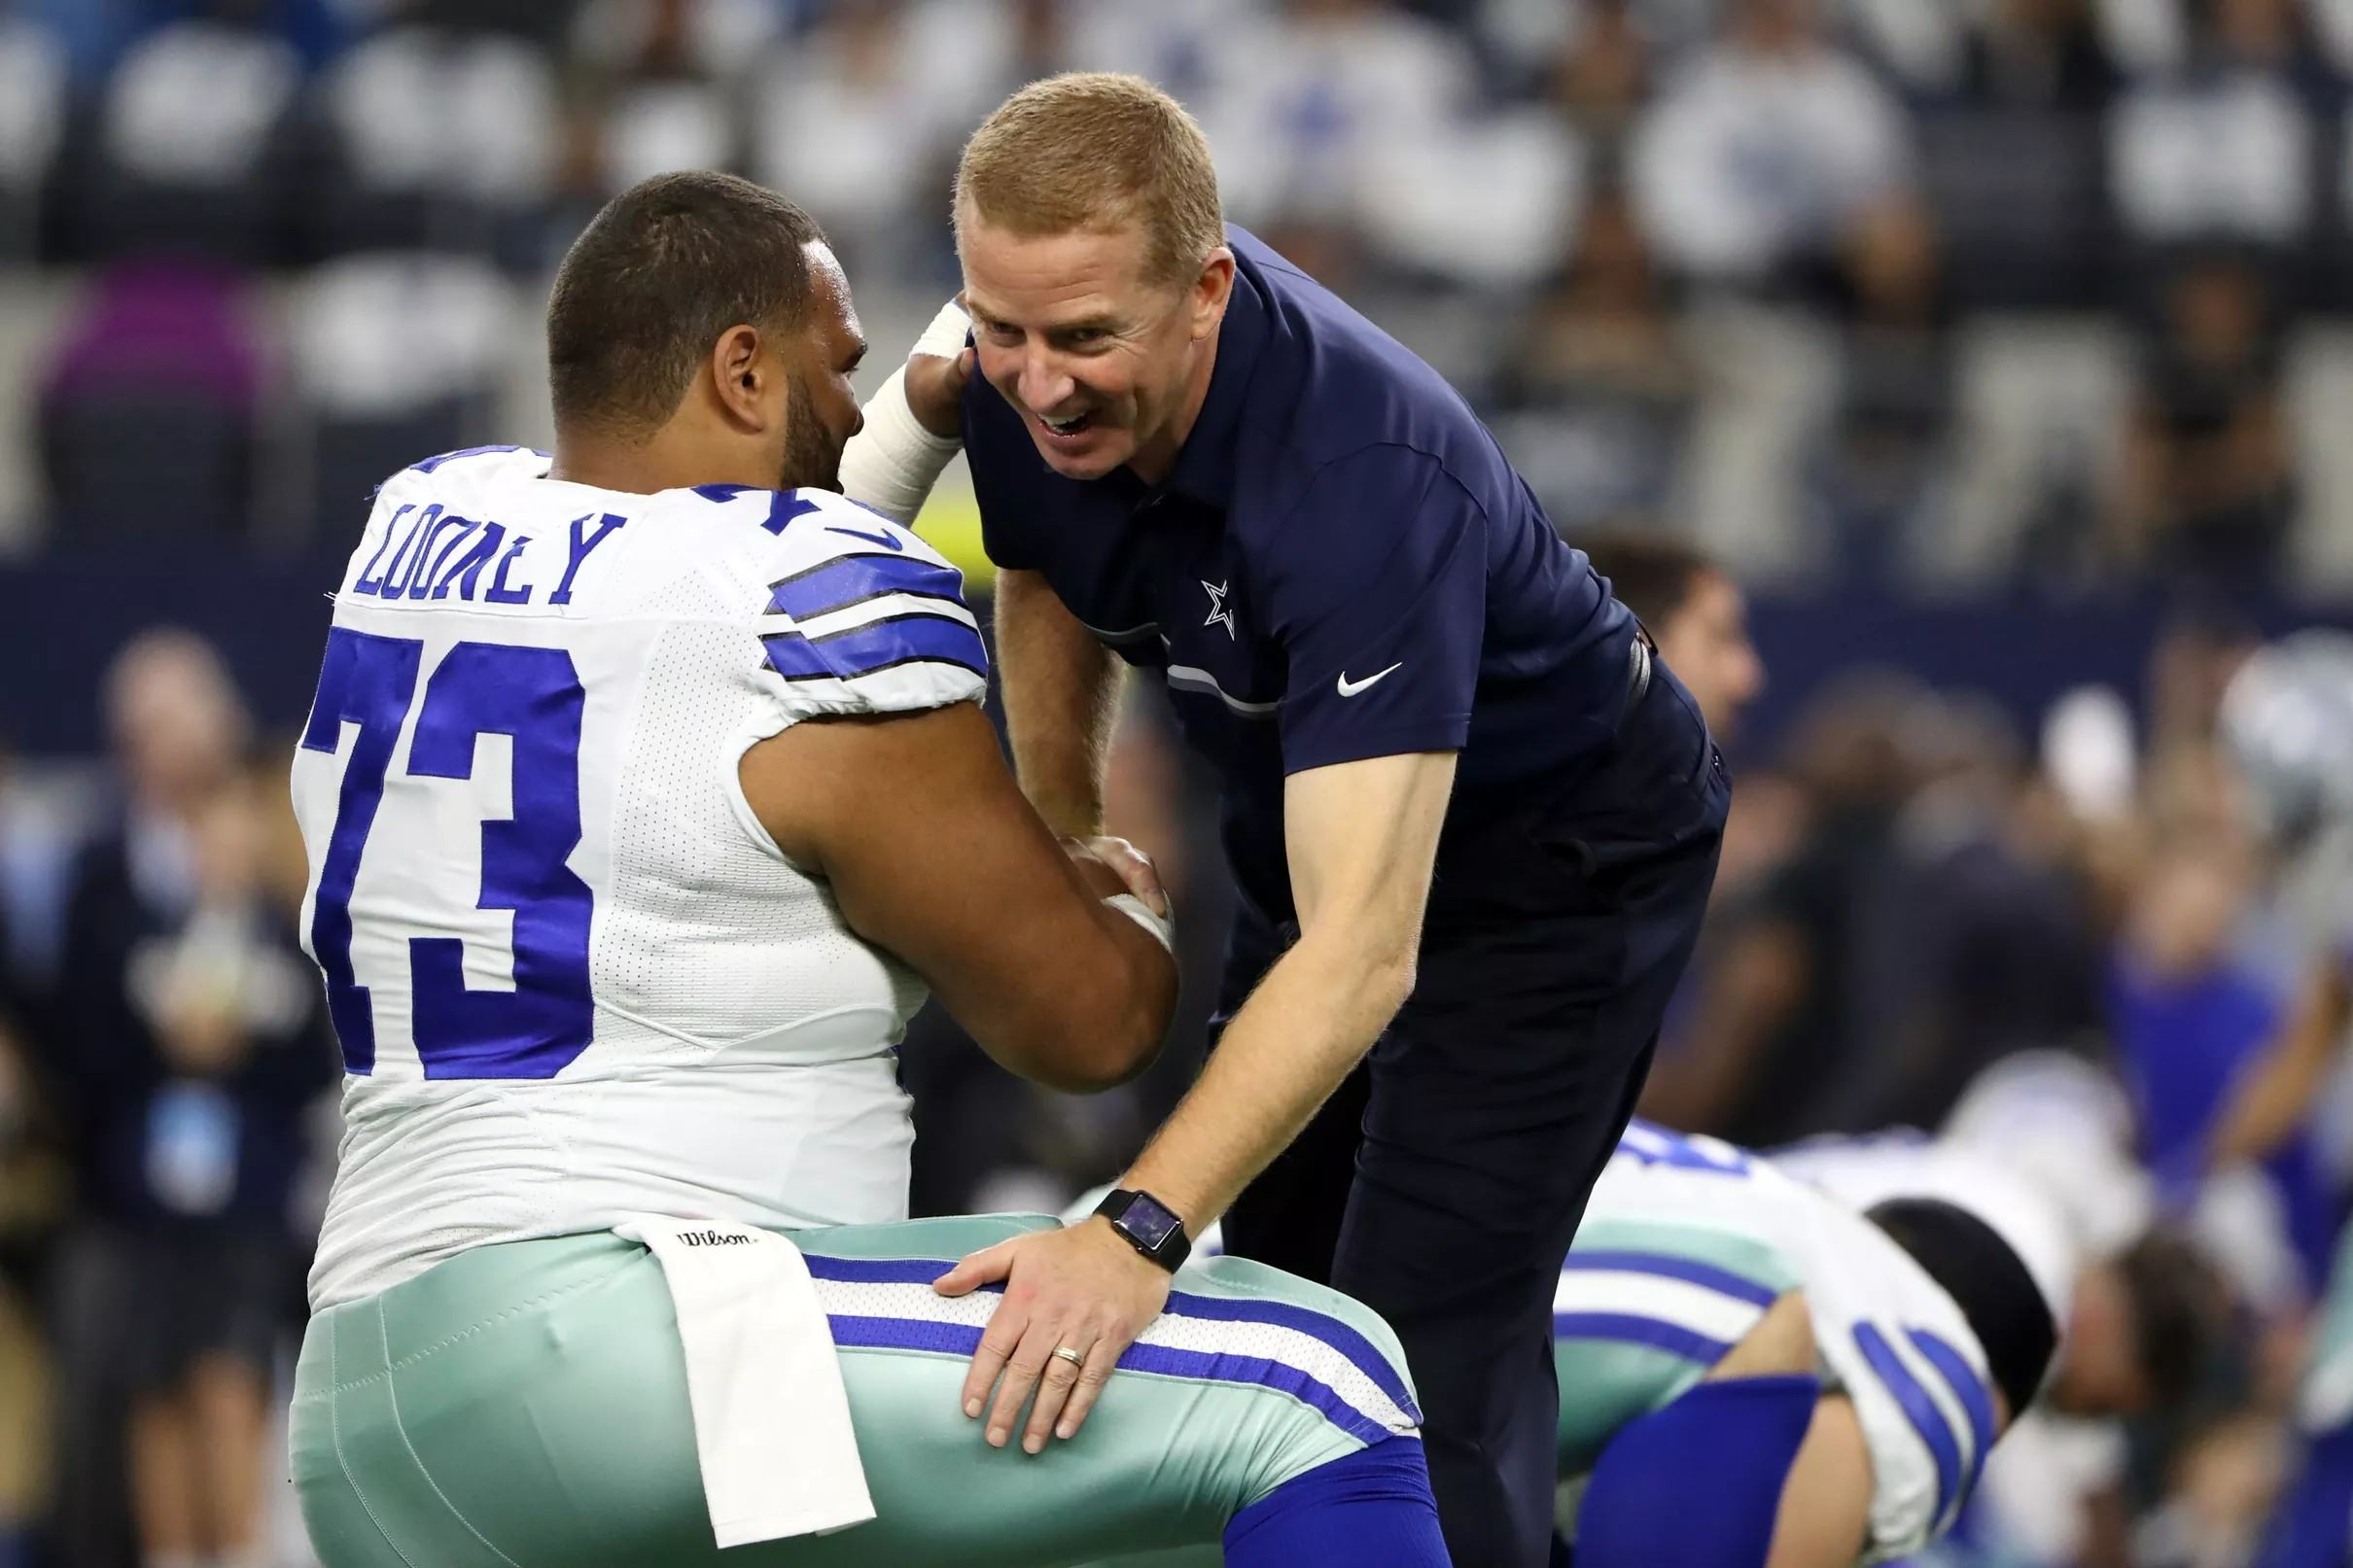 Cowboys Focused on Improved Communication to Solve Road Woes at Redskins